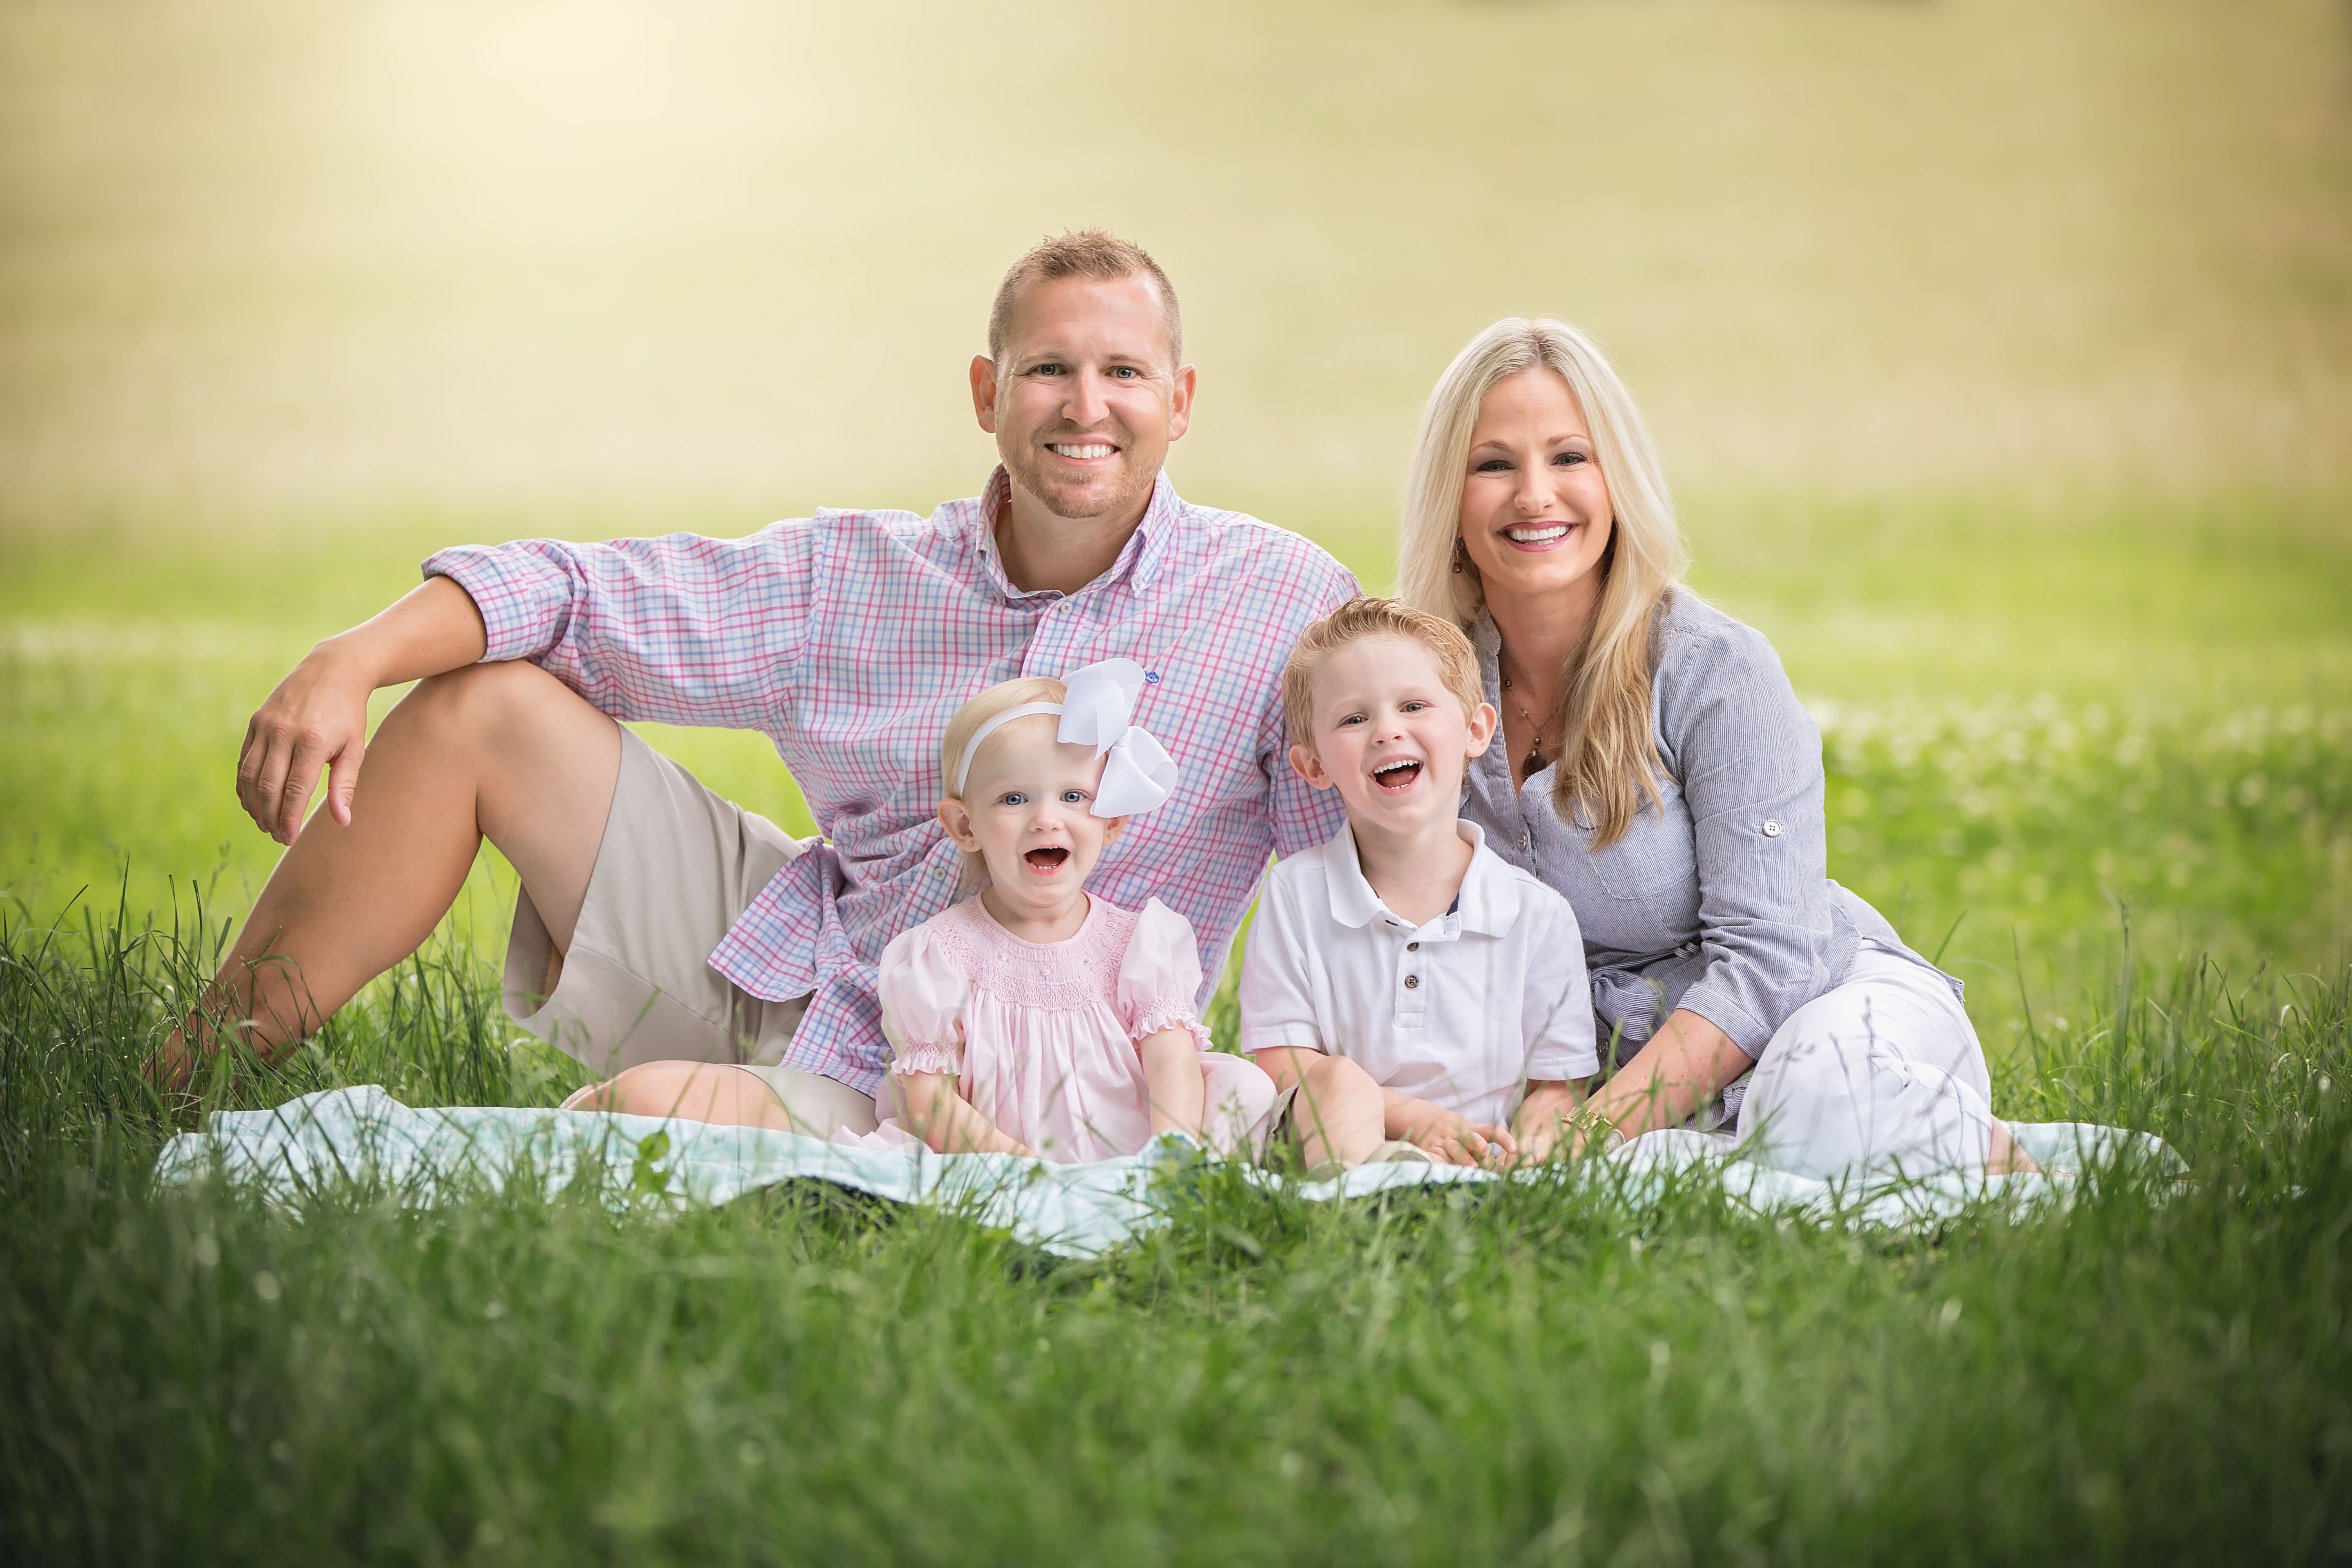 Spring Family of 4 wearing pastel colors - Nashville Family Portraits